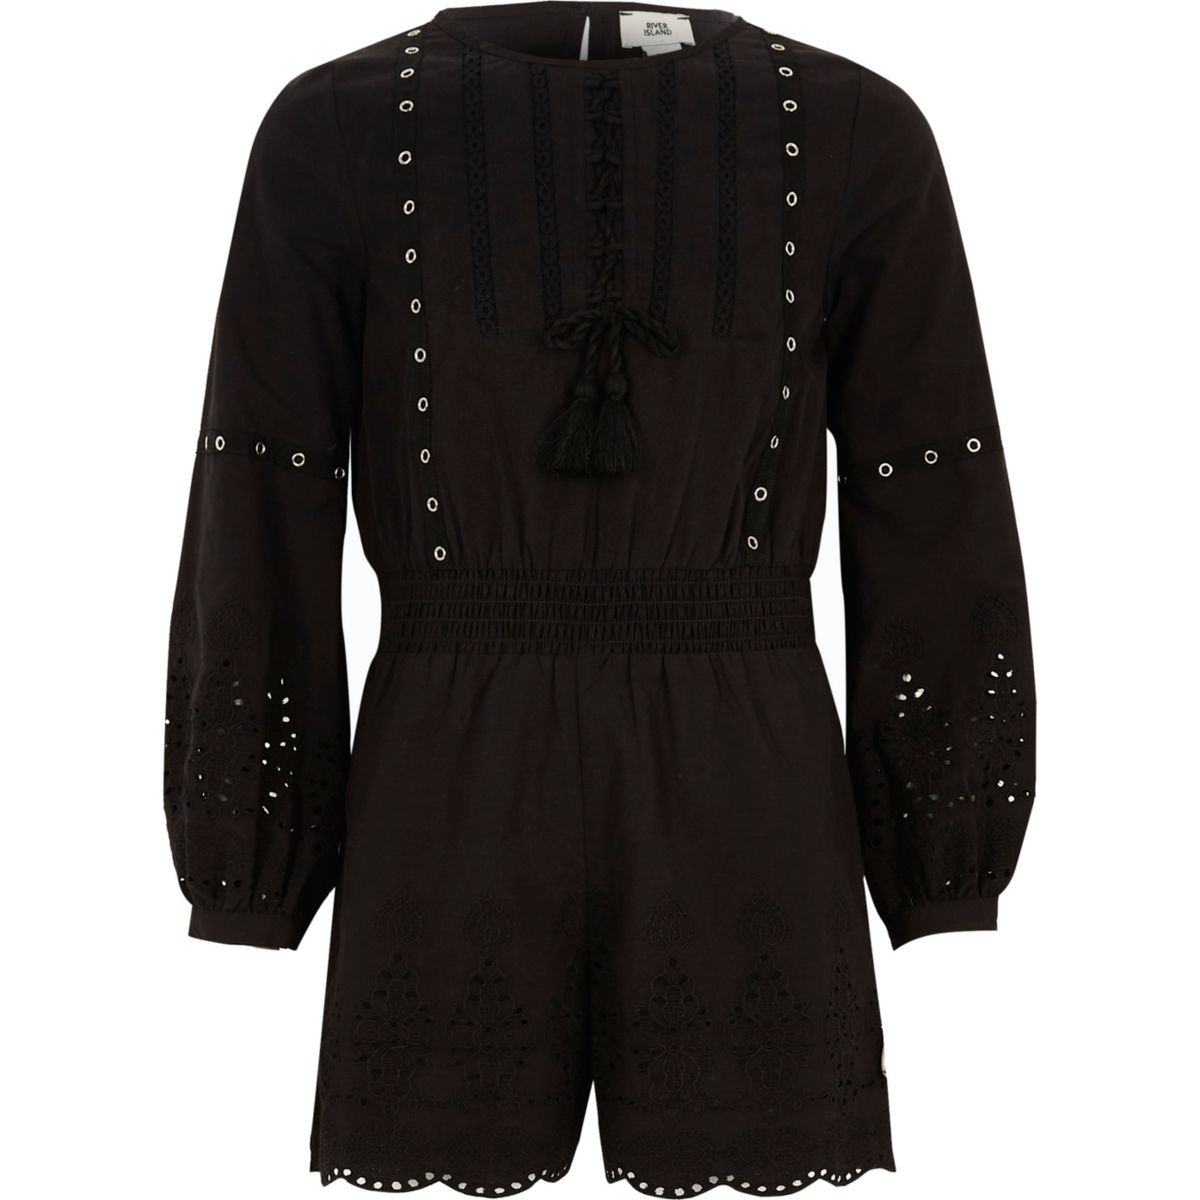 Girls black eyelet trim broderie romper